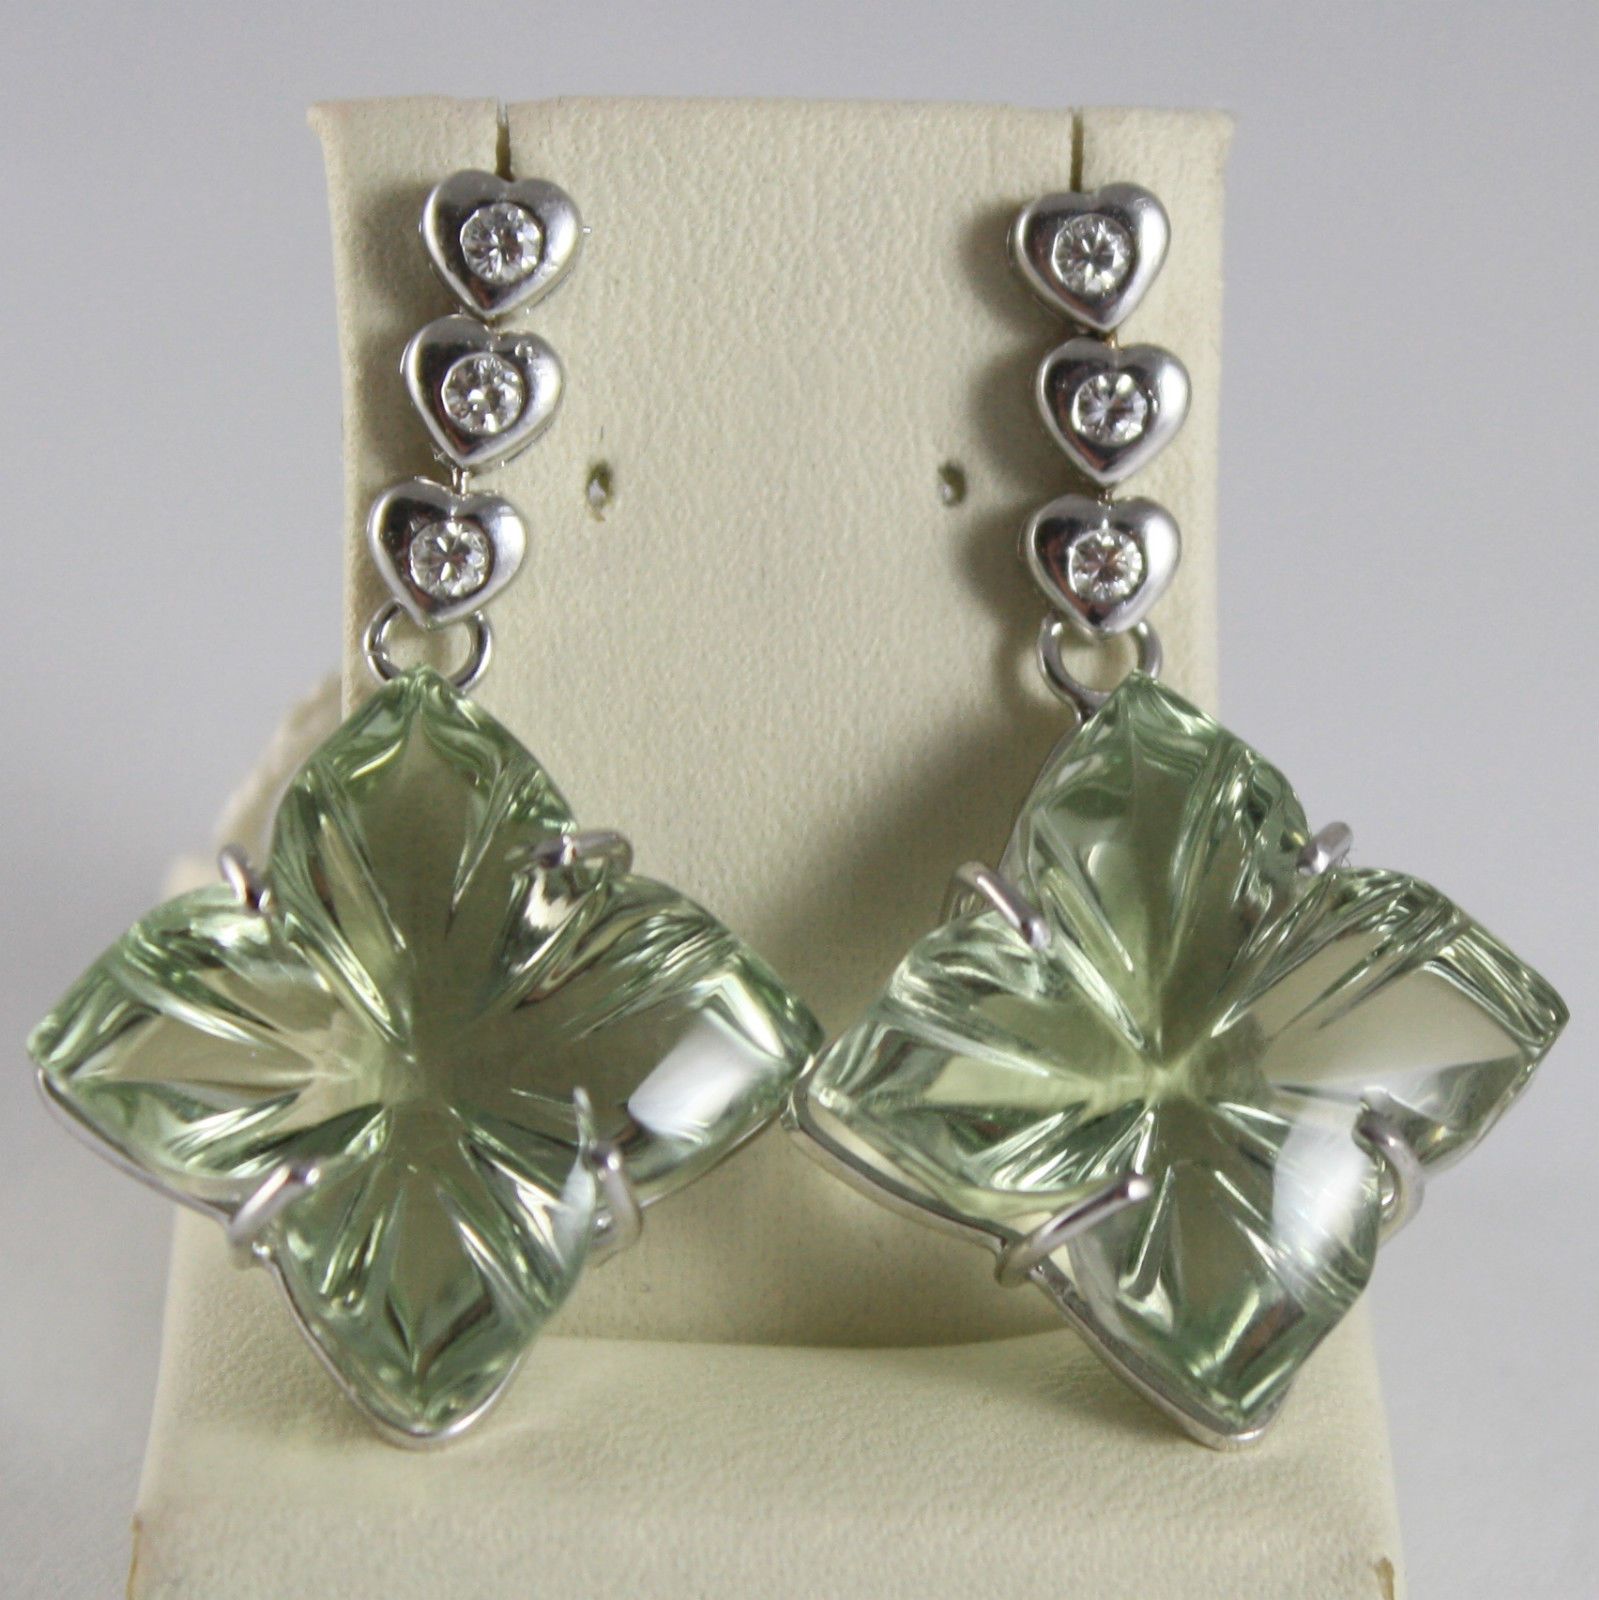 SOLID 18K WHITE GOLD EARRINGS HEART, DIAMOND PRASIOLITE FLOWER CUT MADE IN ITALY